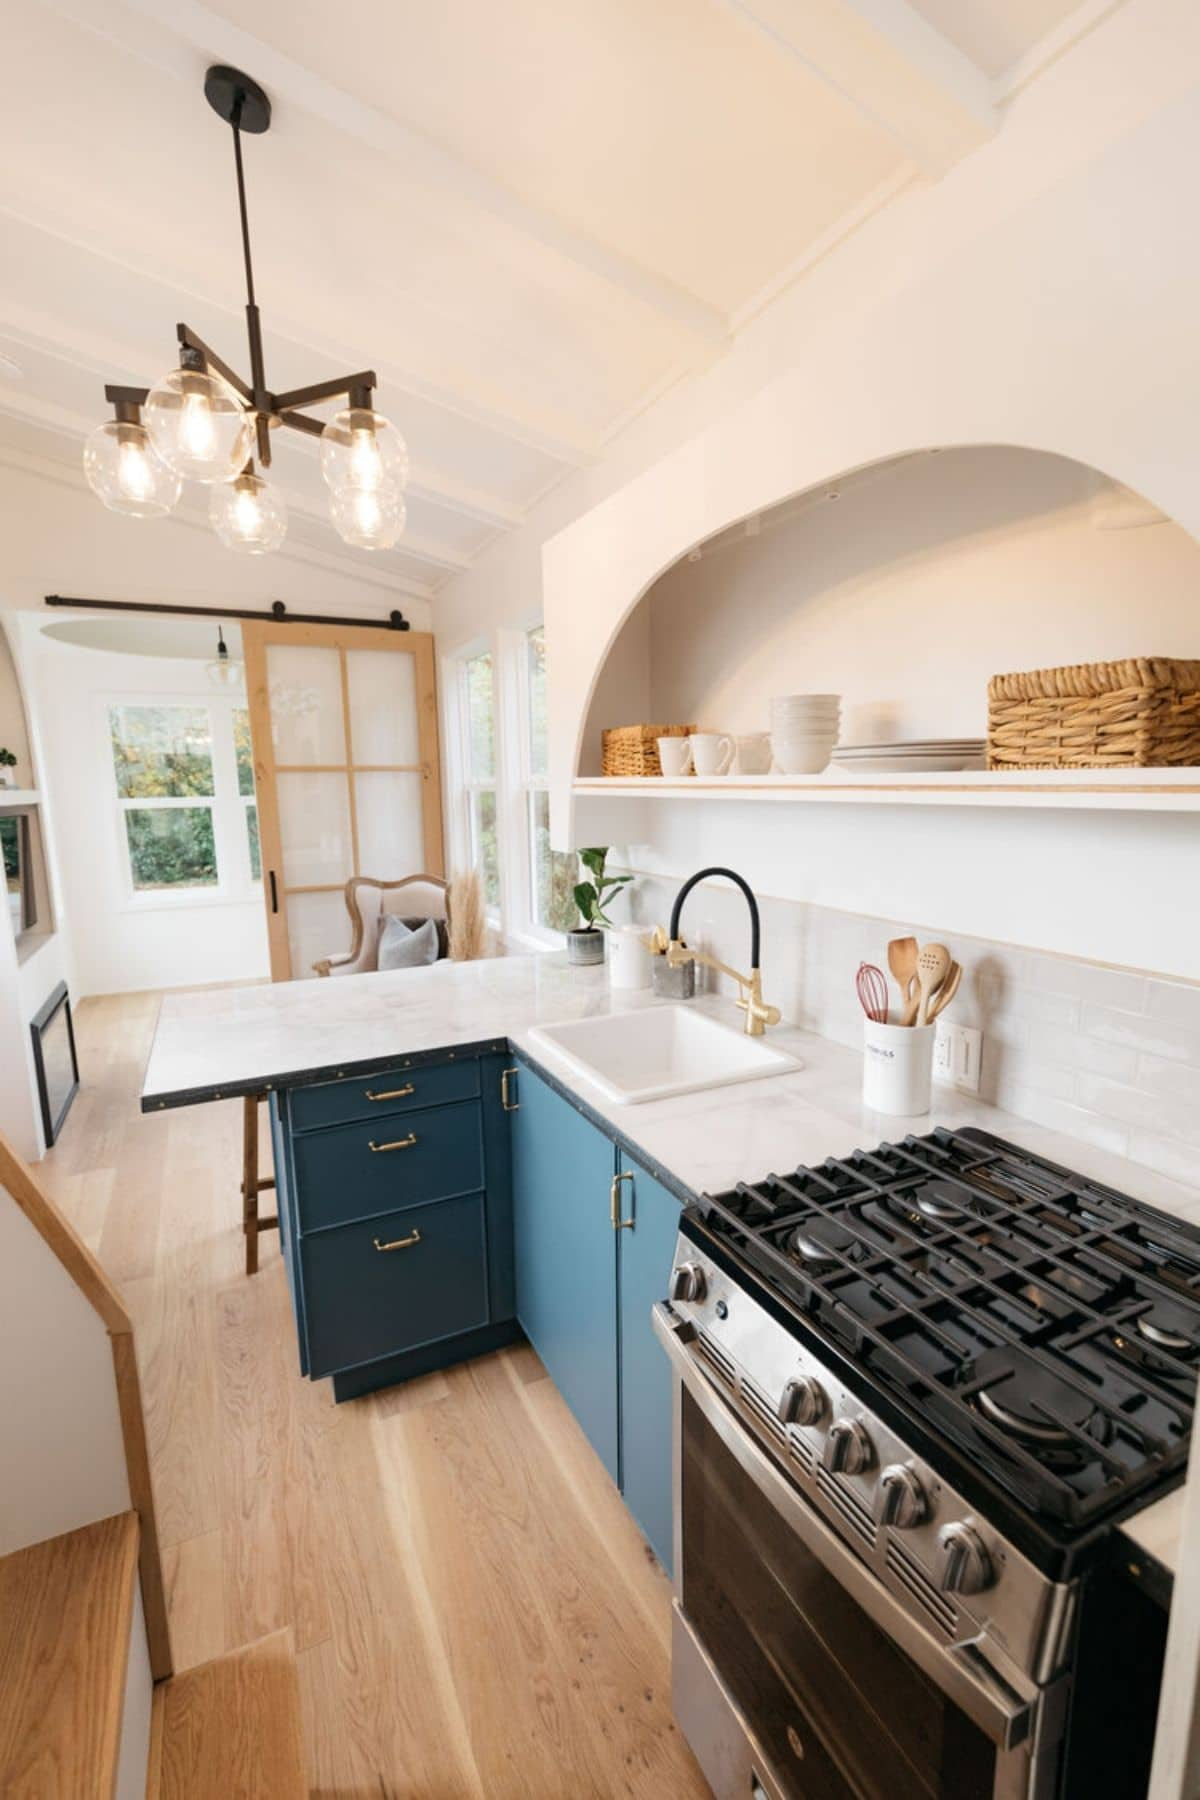 Teal cabinets under white counter with gas stove in foreground